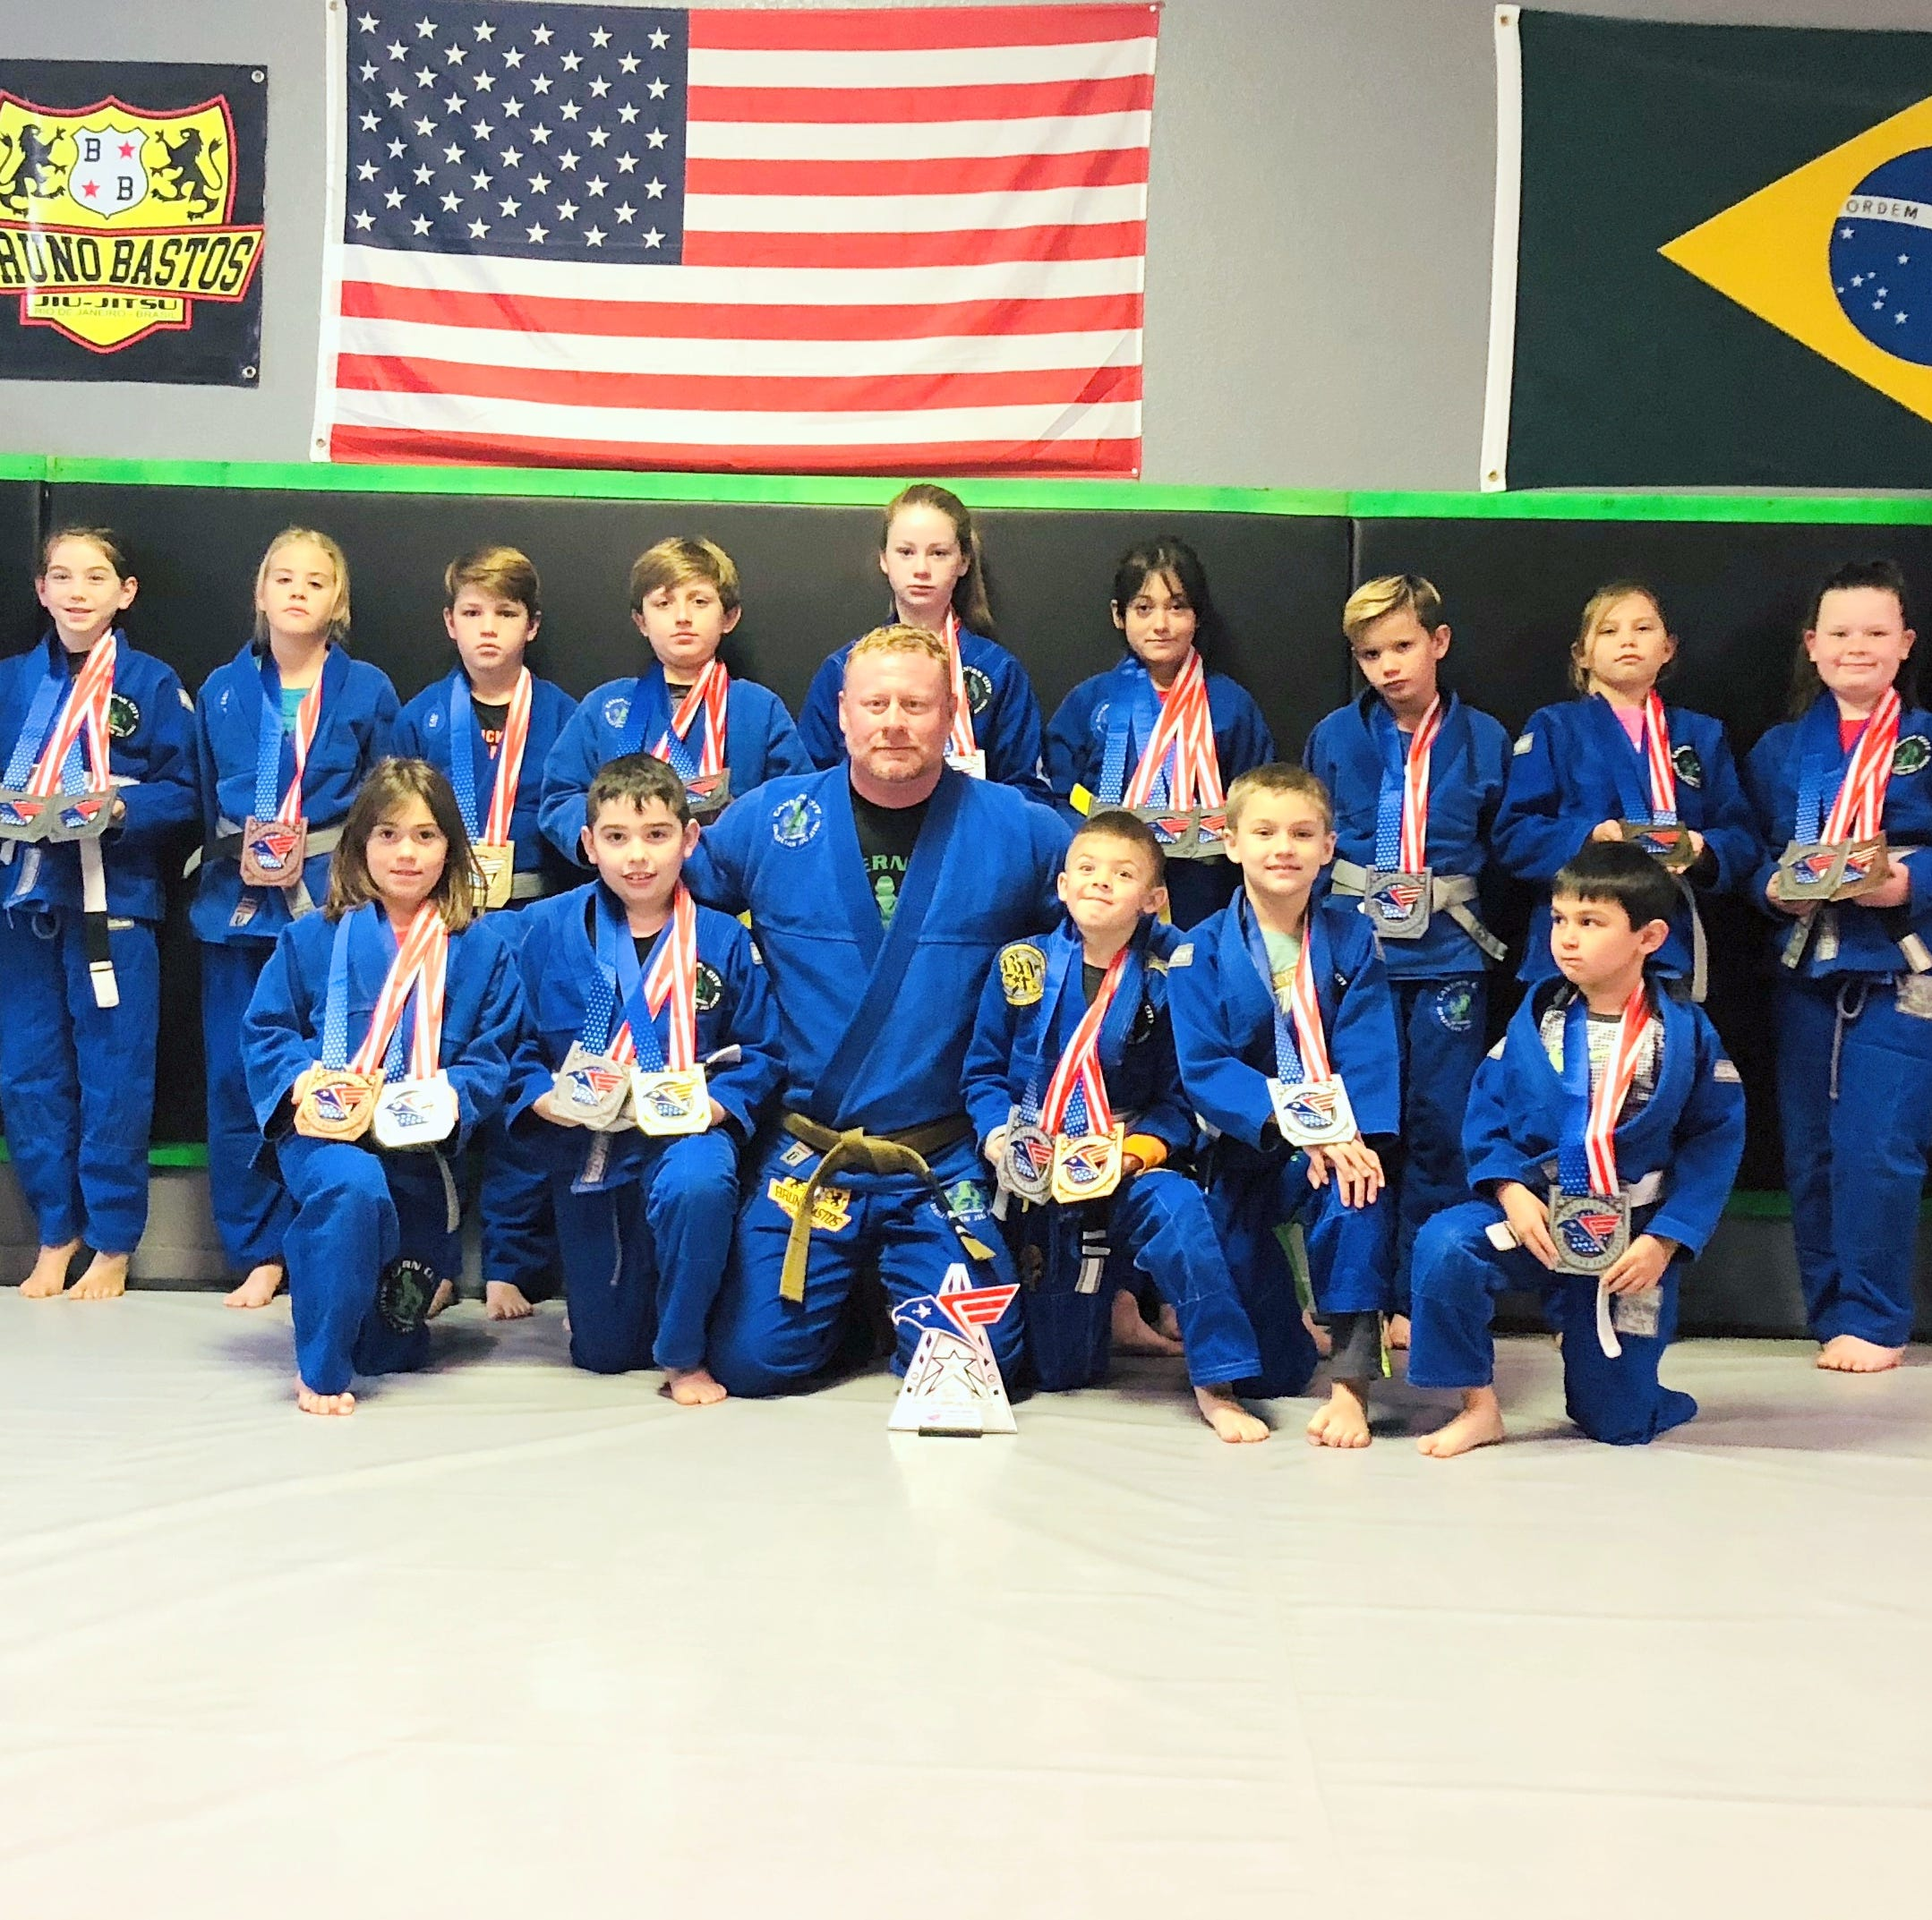 Cavern City BJJ takes second place at Albuquerque meet